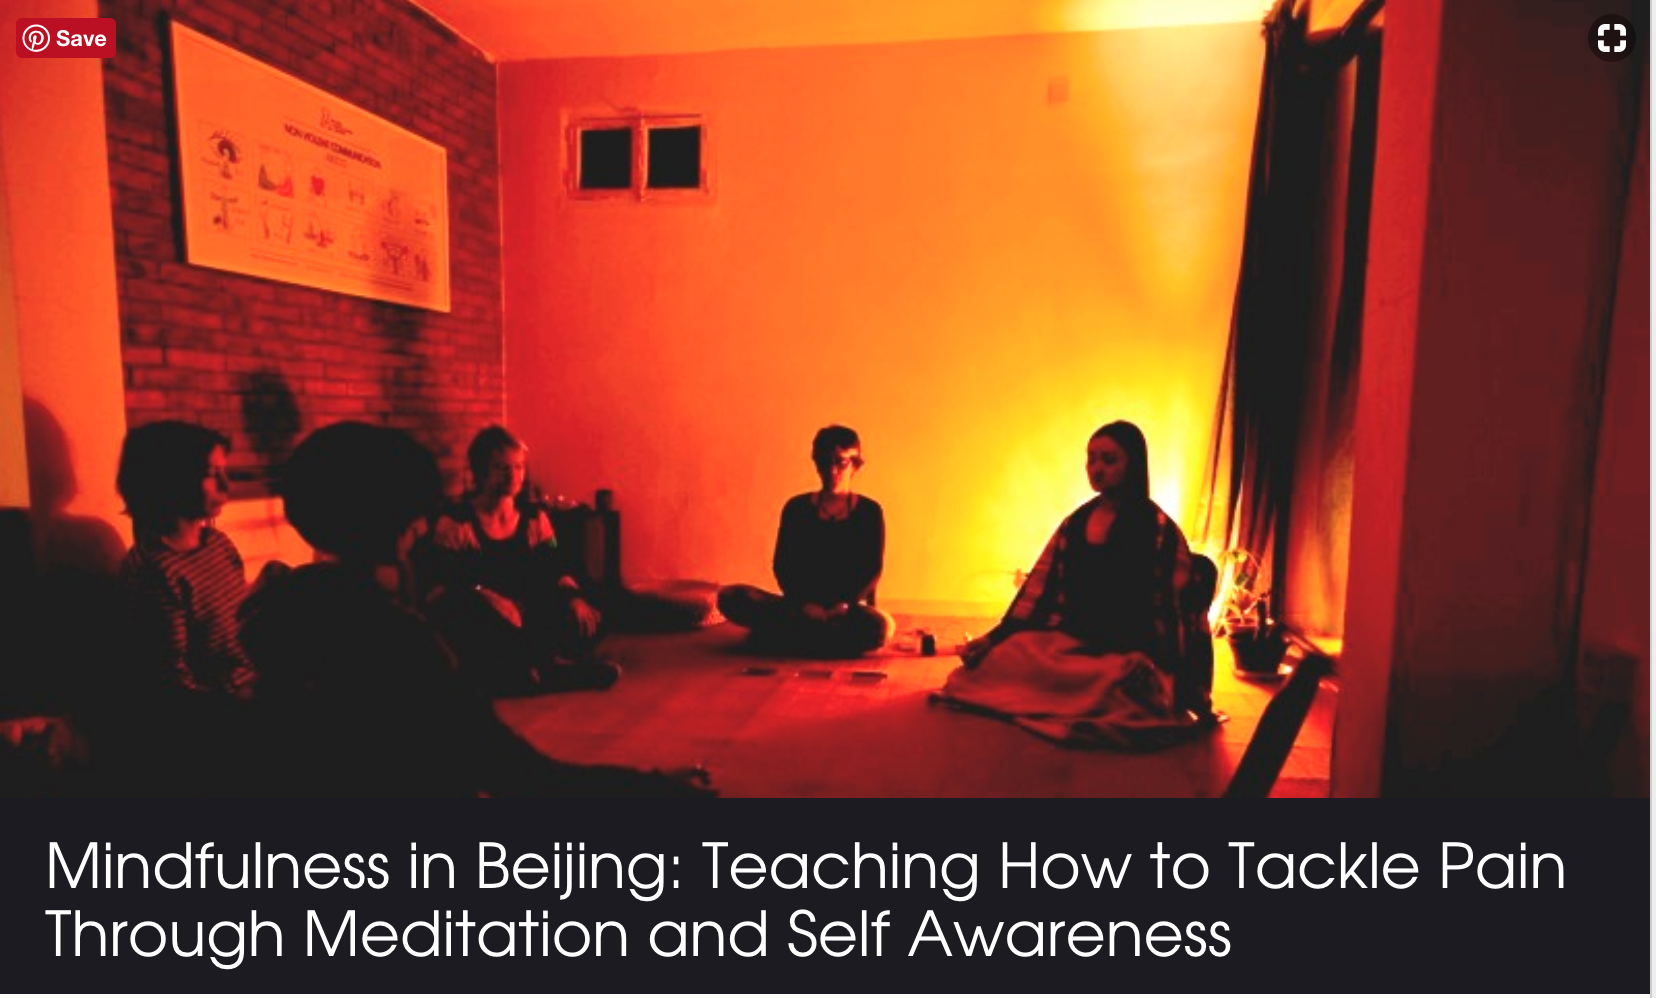 Mindfulness in Beijing: Teaching How to Tackle Pain Through Meditation and Self Awareness  - Read on the Beijinger